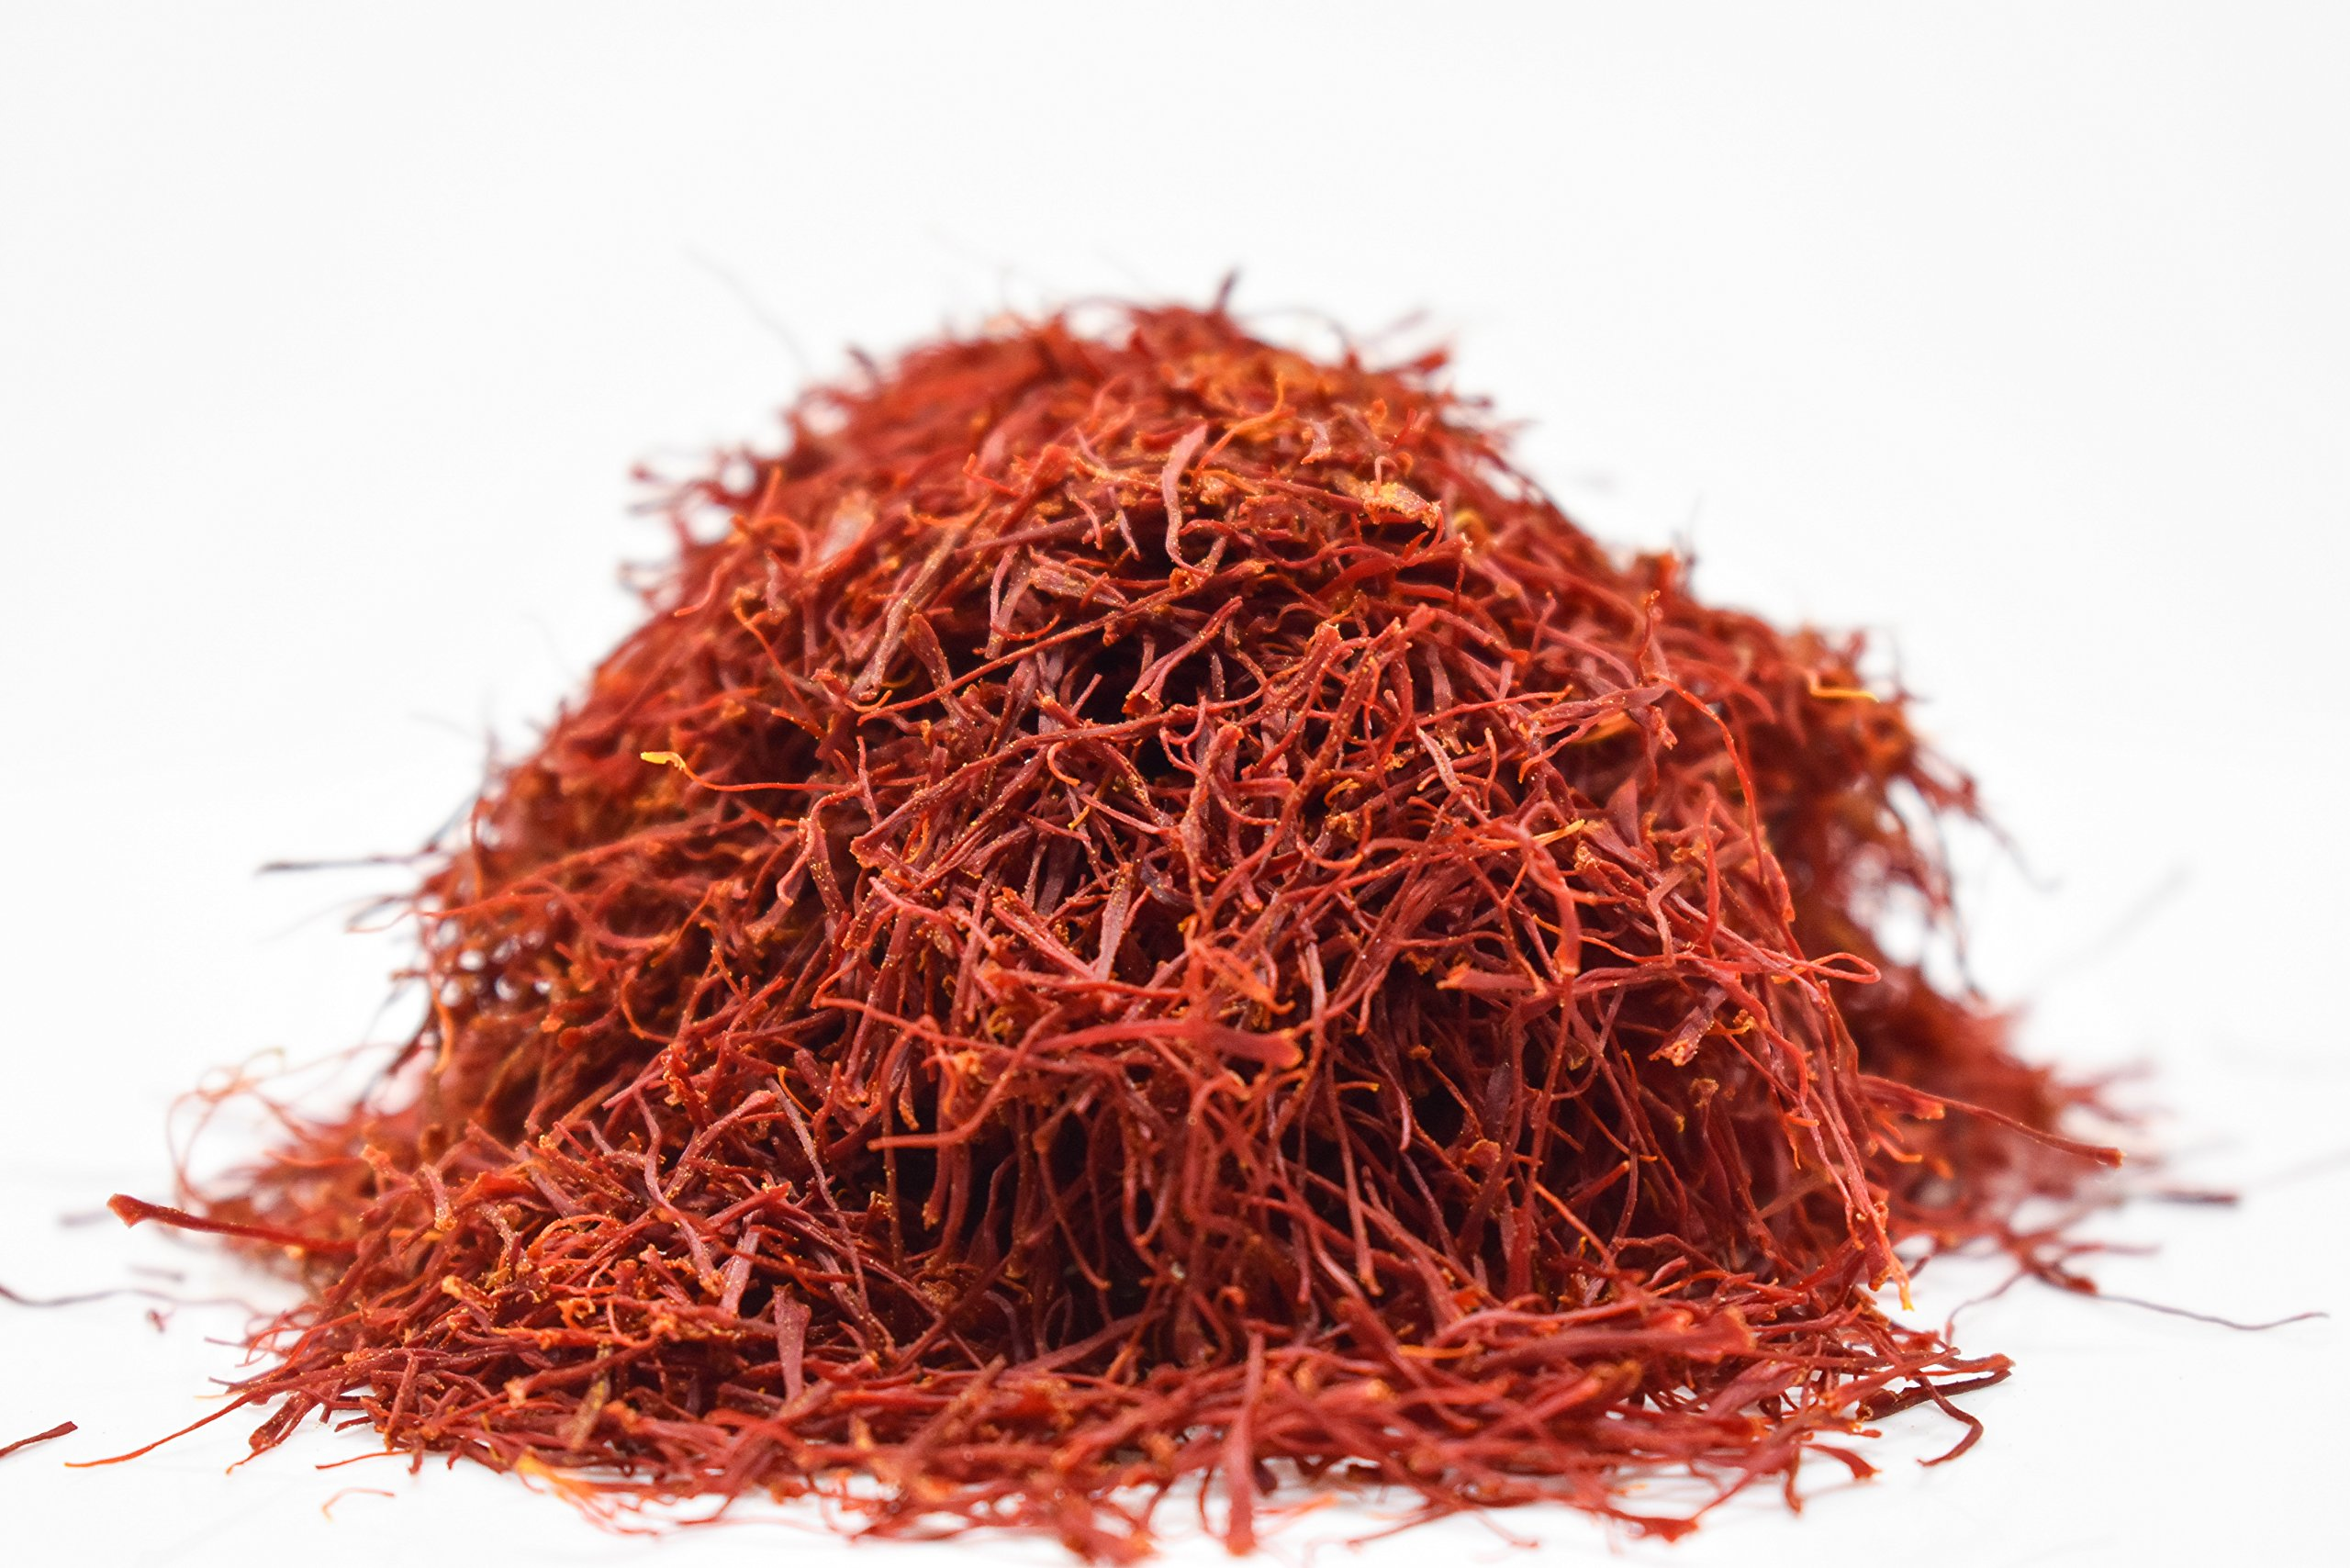 Persian Saffron Threads by Slofoodgroup Premium Quality Saffron Threads, All Red Saffron Filaments (various sizes) Grade I Saffron (1 Ounce Saffron) by SLO FOOD GROUP (Image #1)